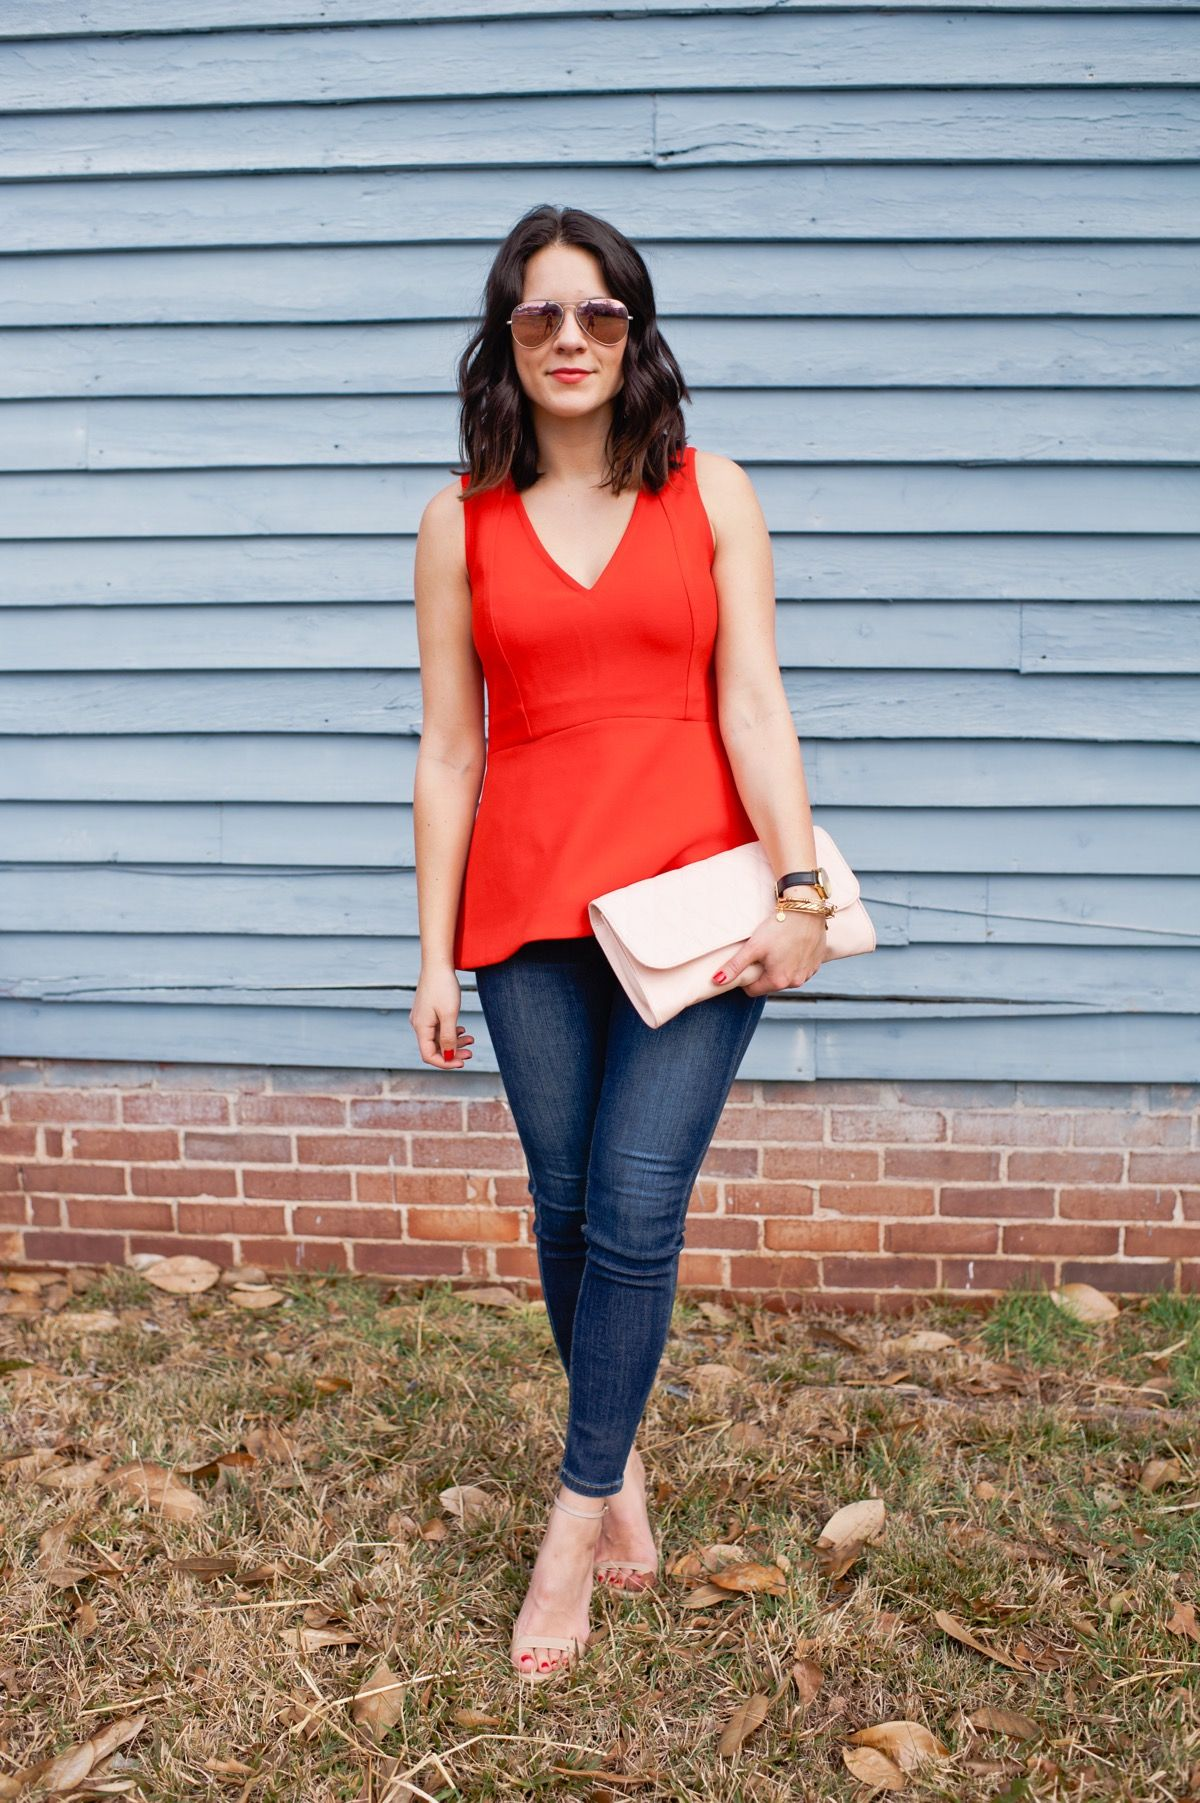 82d8b41b Pink and red color block outfit idea | My Style Vita | Color ...